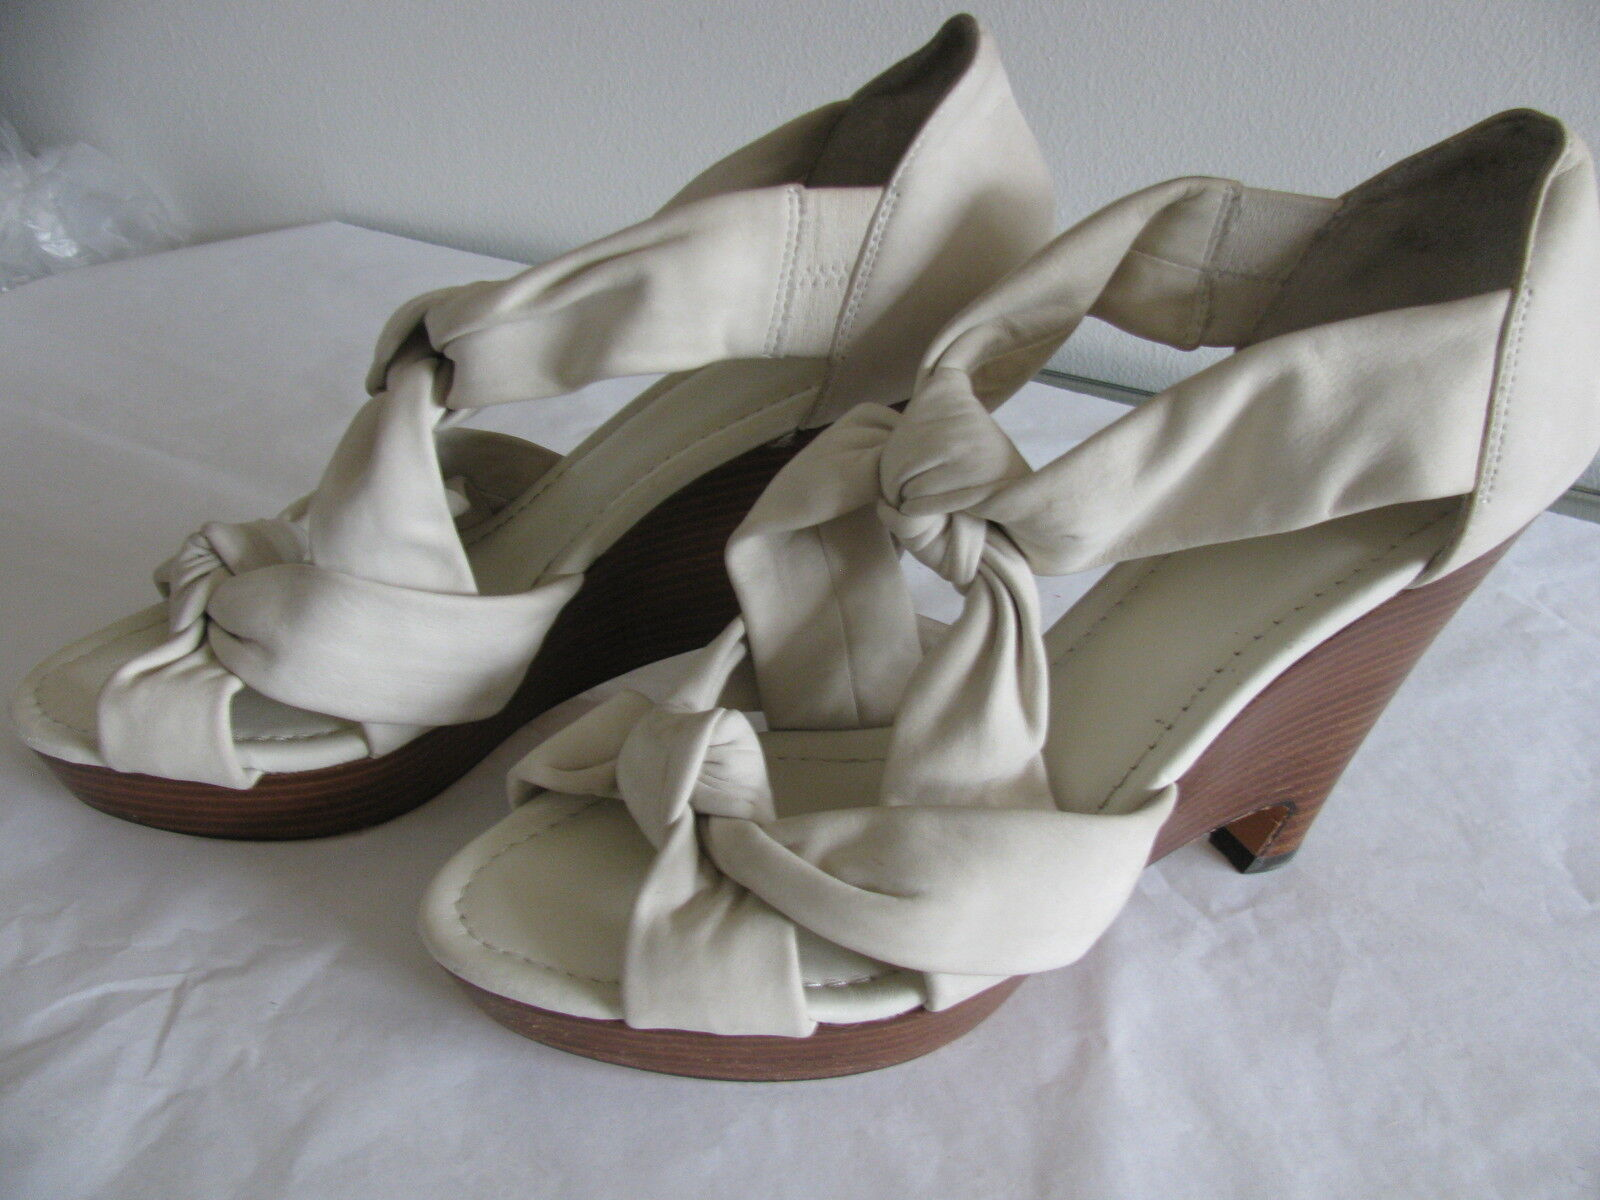 New Saks Fifth Avenue femmes's Dusty blanc Leather Knotted Sandals Wedges Sz 9.5